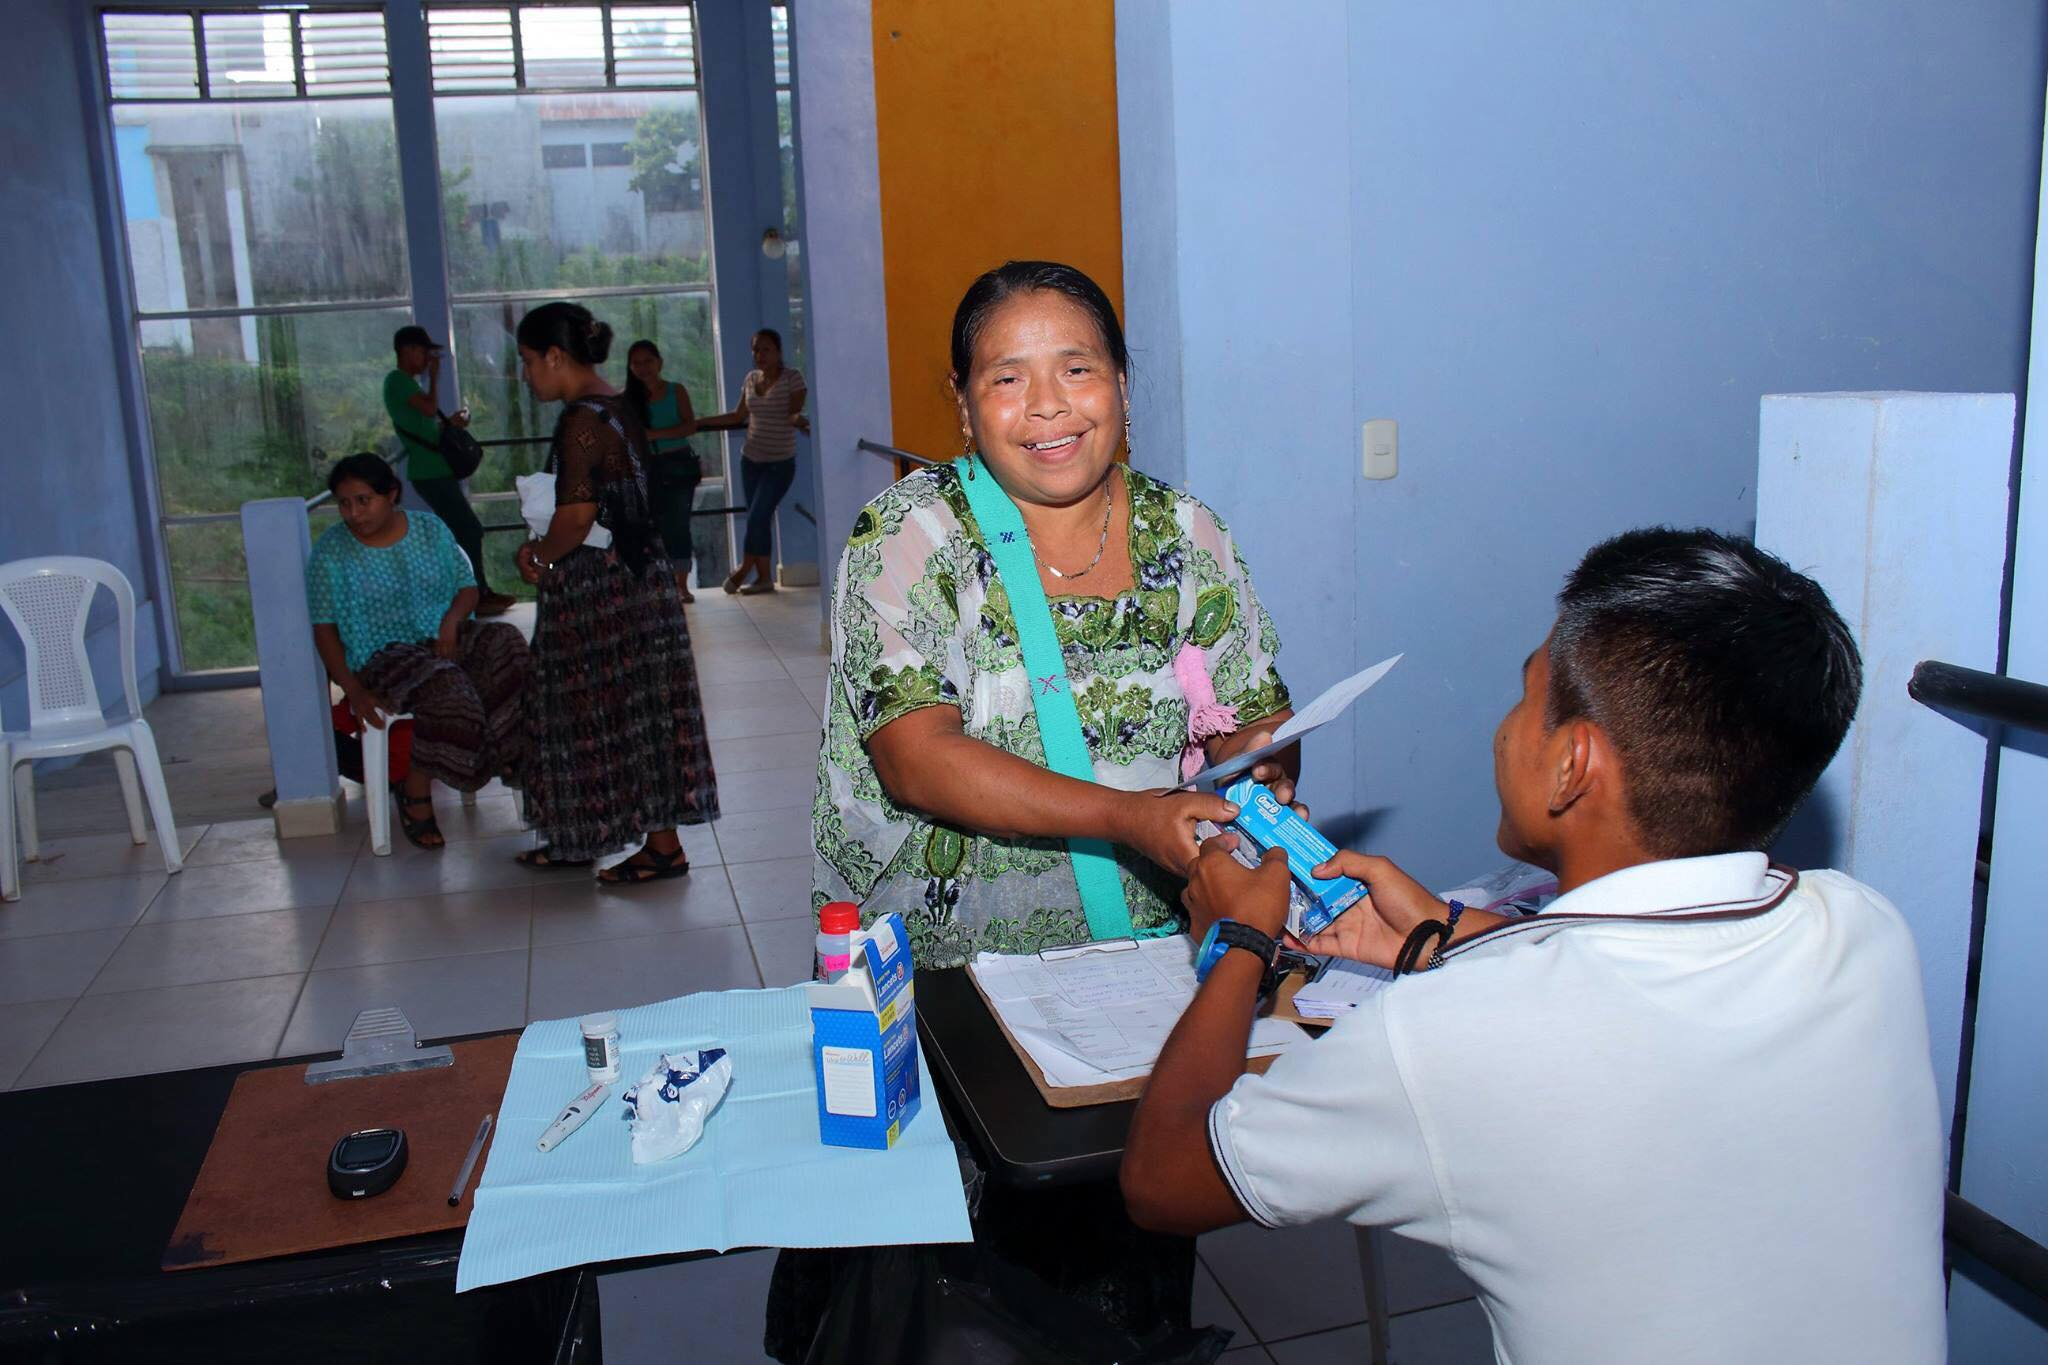 all treated patients were given toothpaste, toothbrushes, dental floss and shampoo.